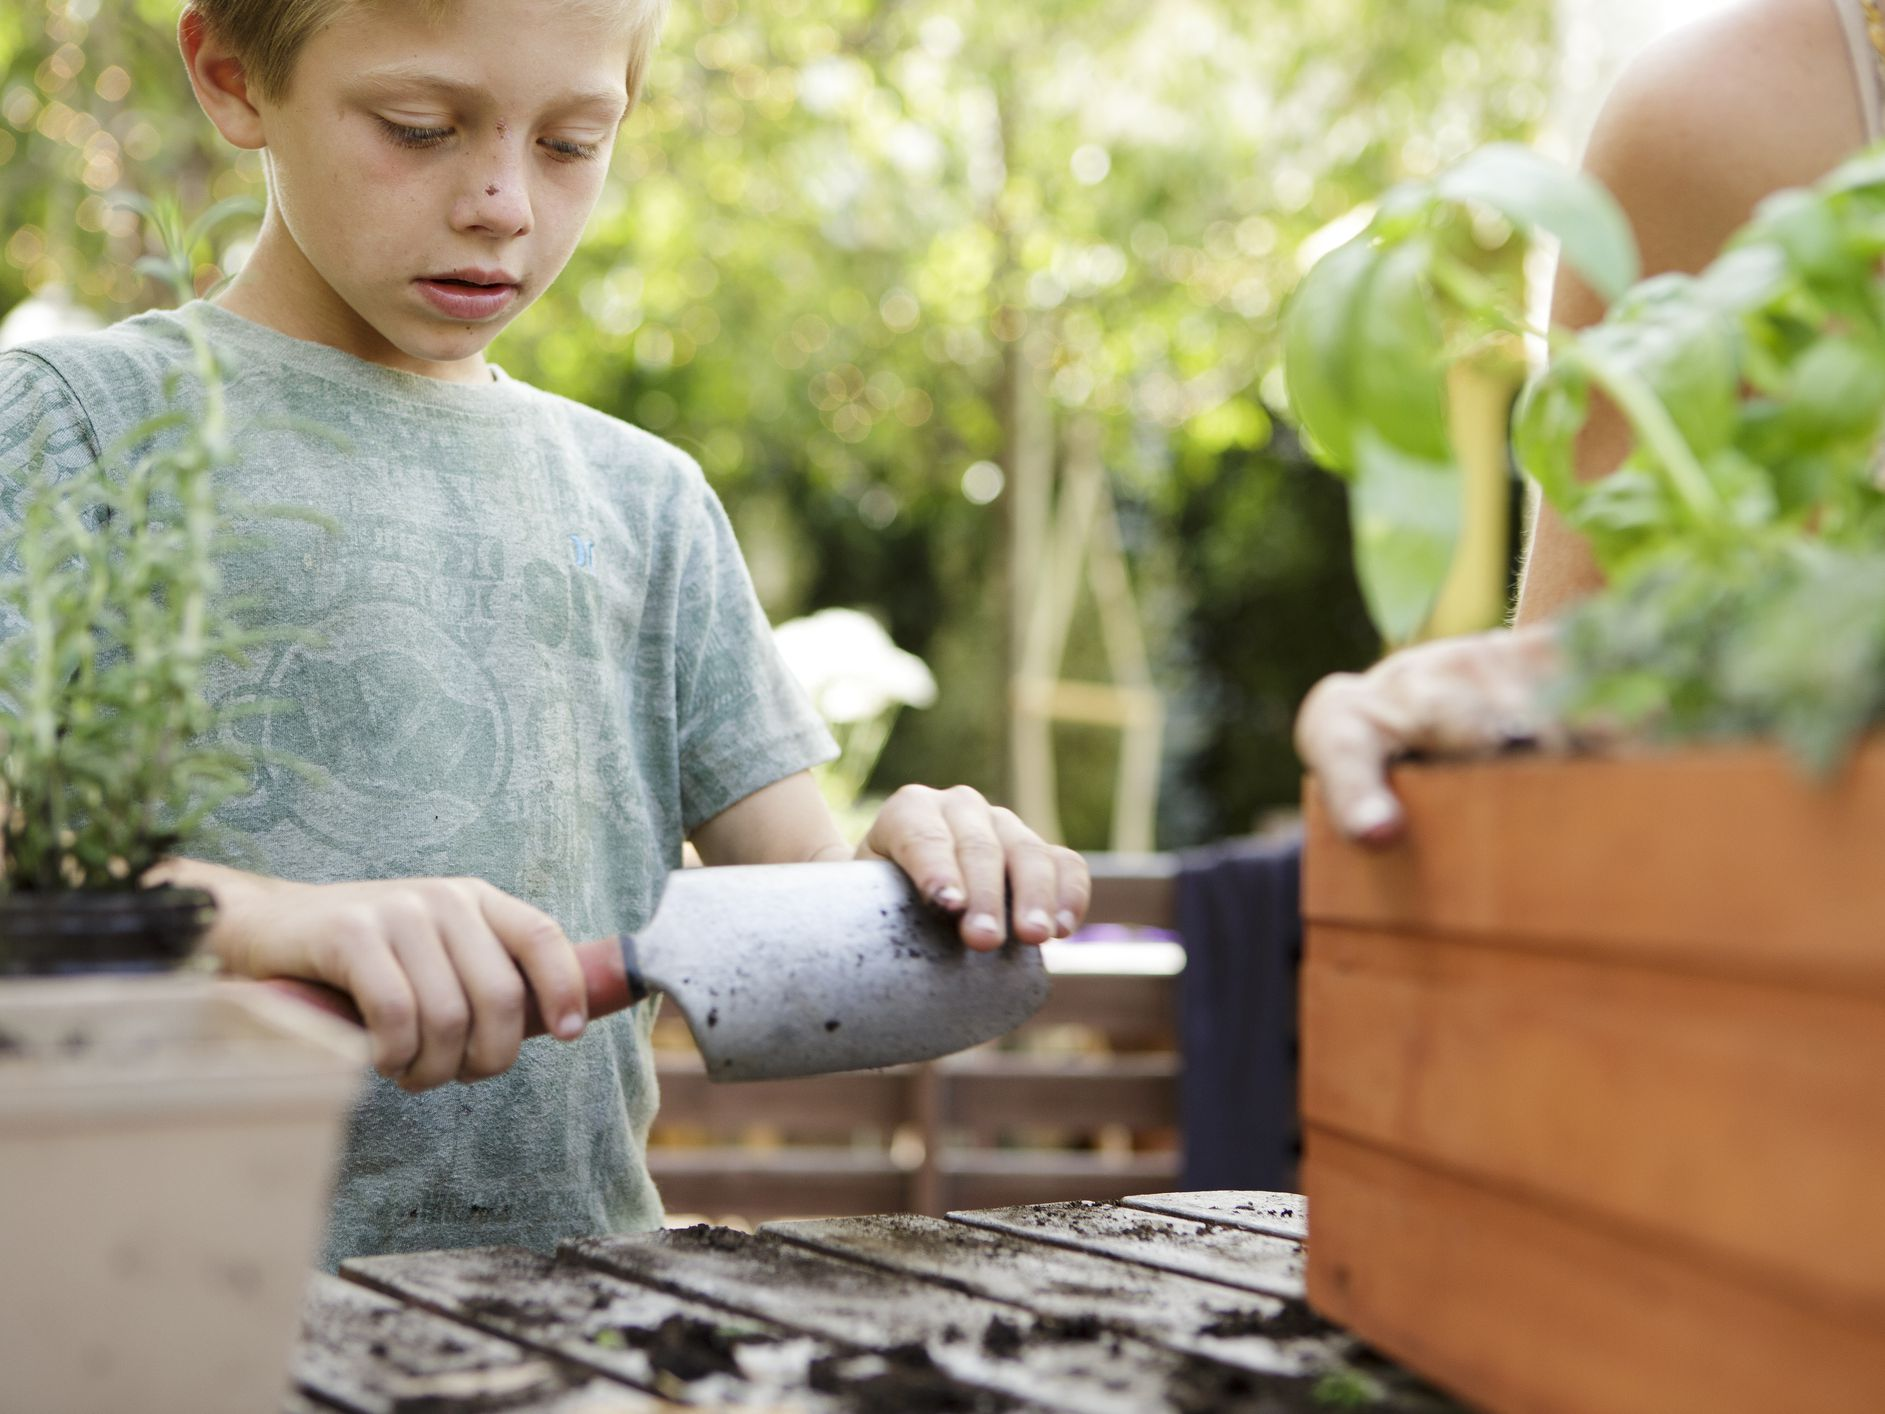 Age-Appropriate Jobs for 9-Year-Old Children